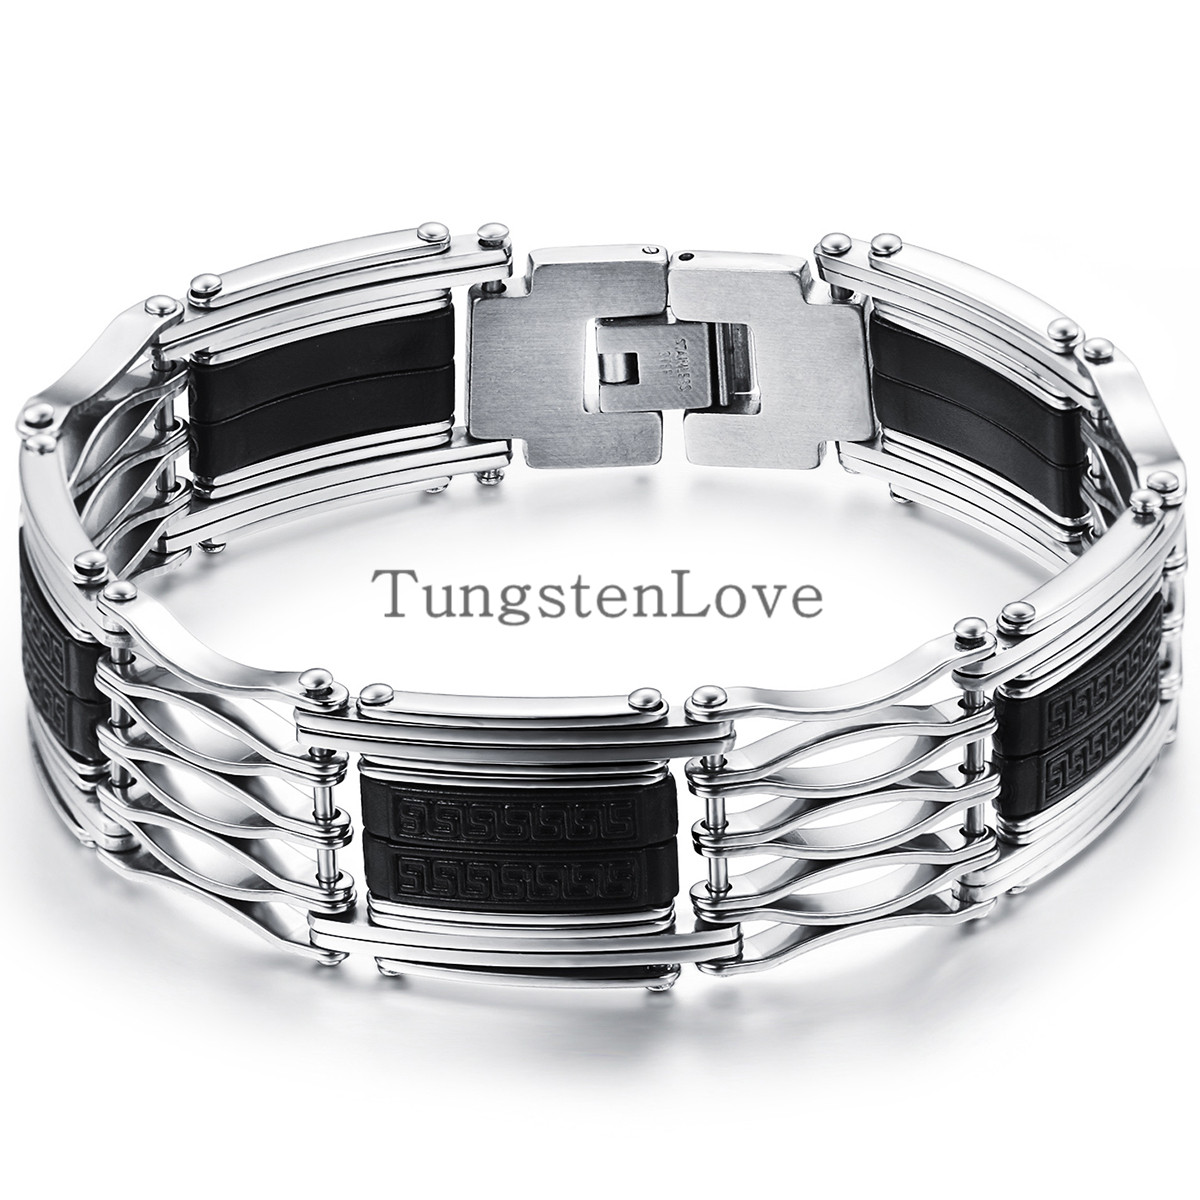 225cm Fashion Mens Stainless Steel Bracelets With Black Silicone Wholesale  2015 New Arrived Metal Bracelet